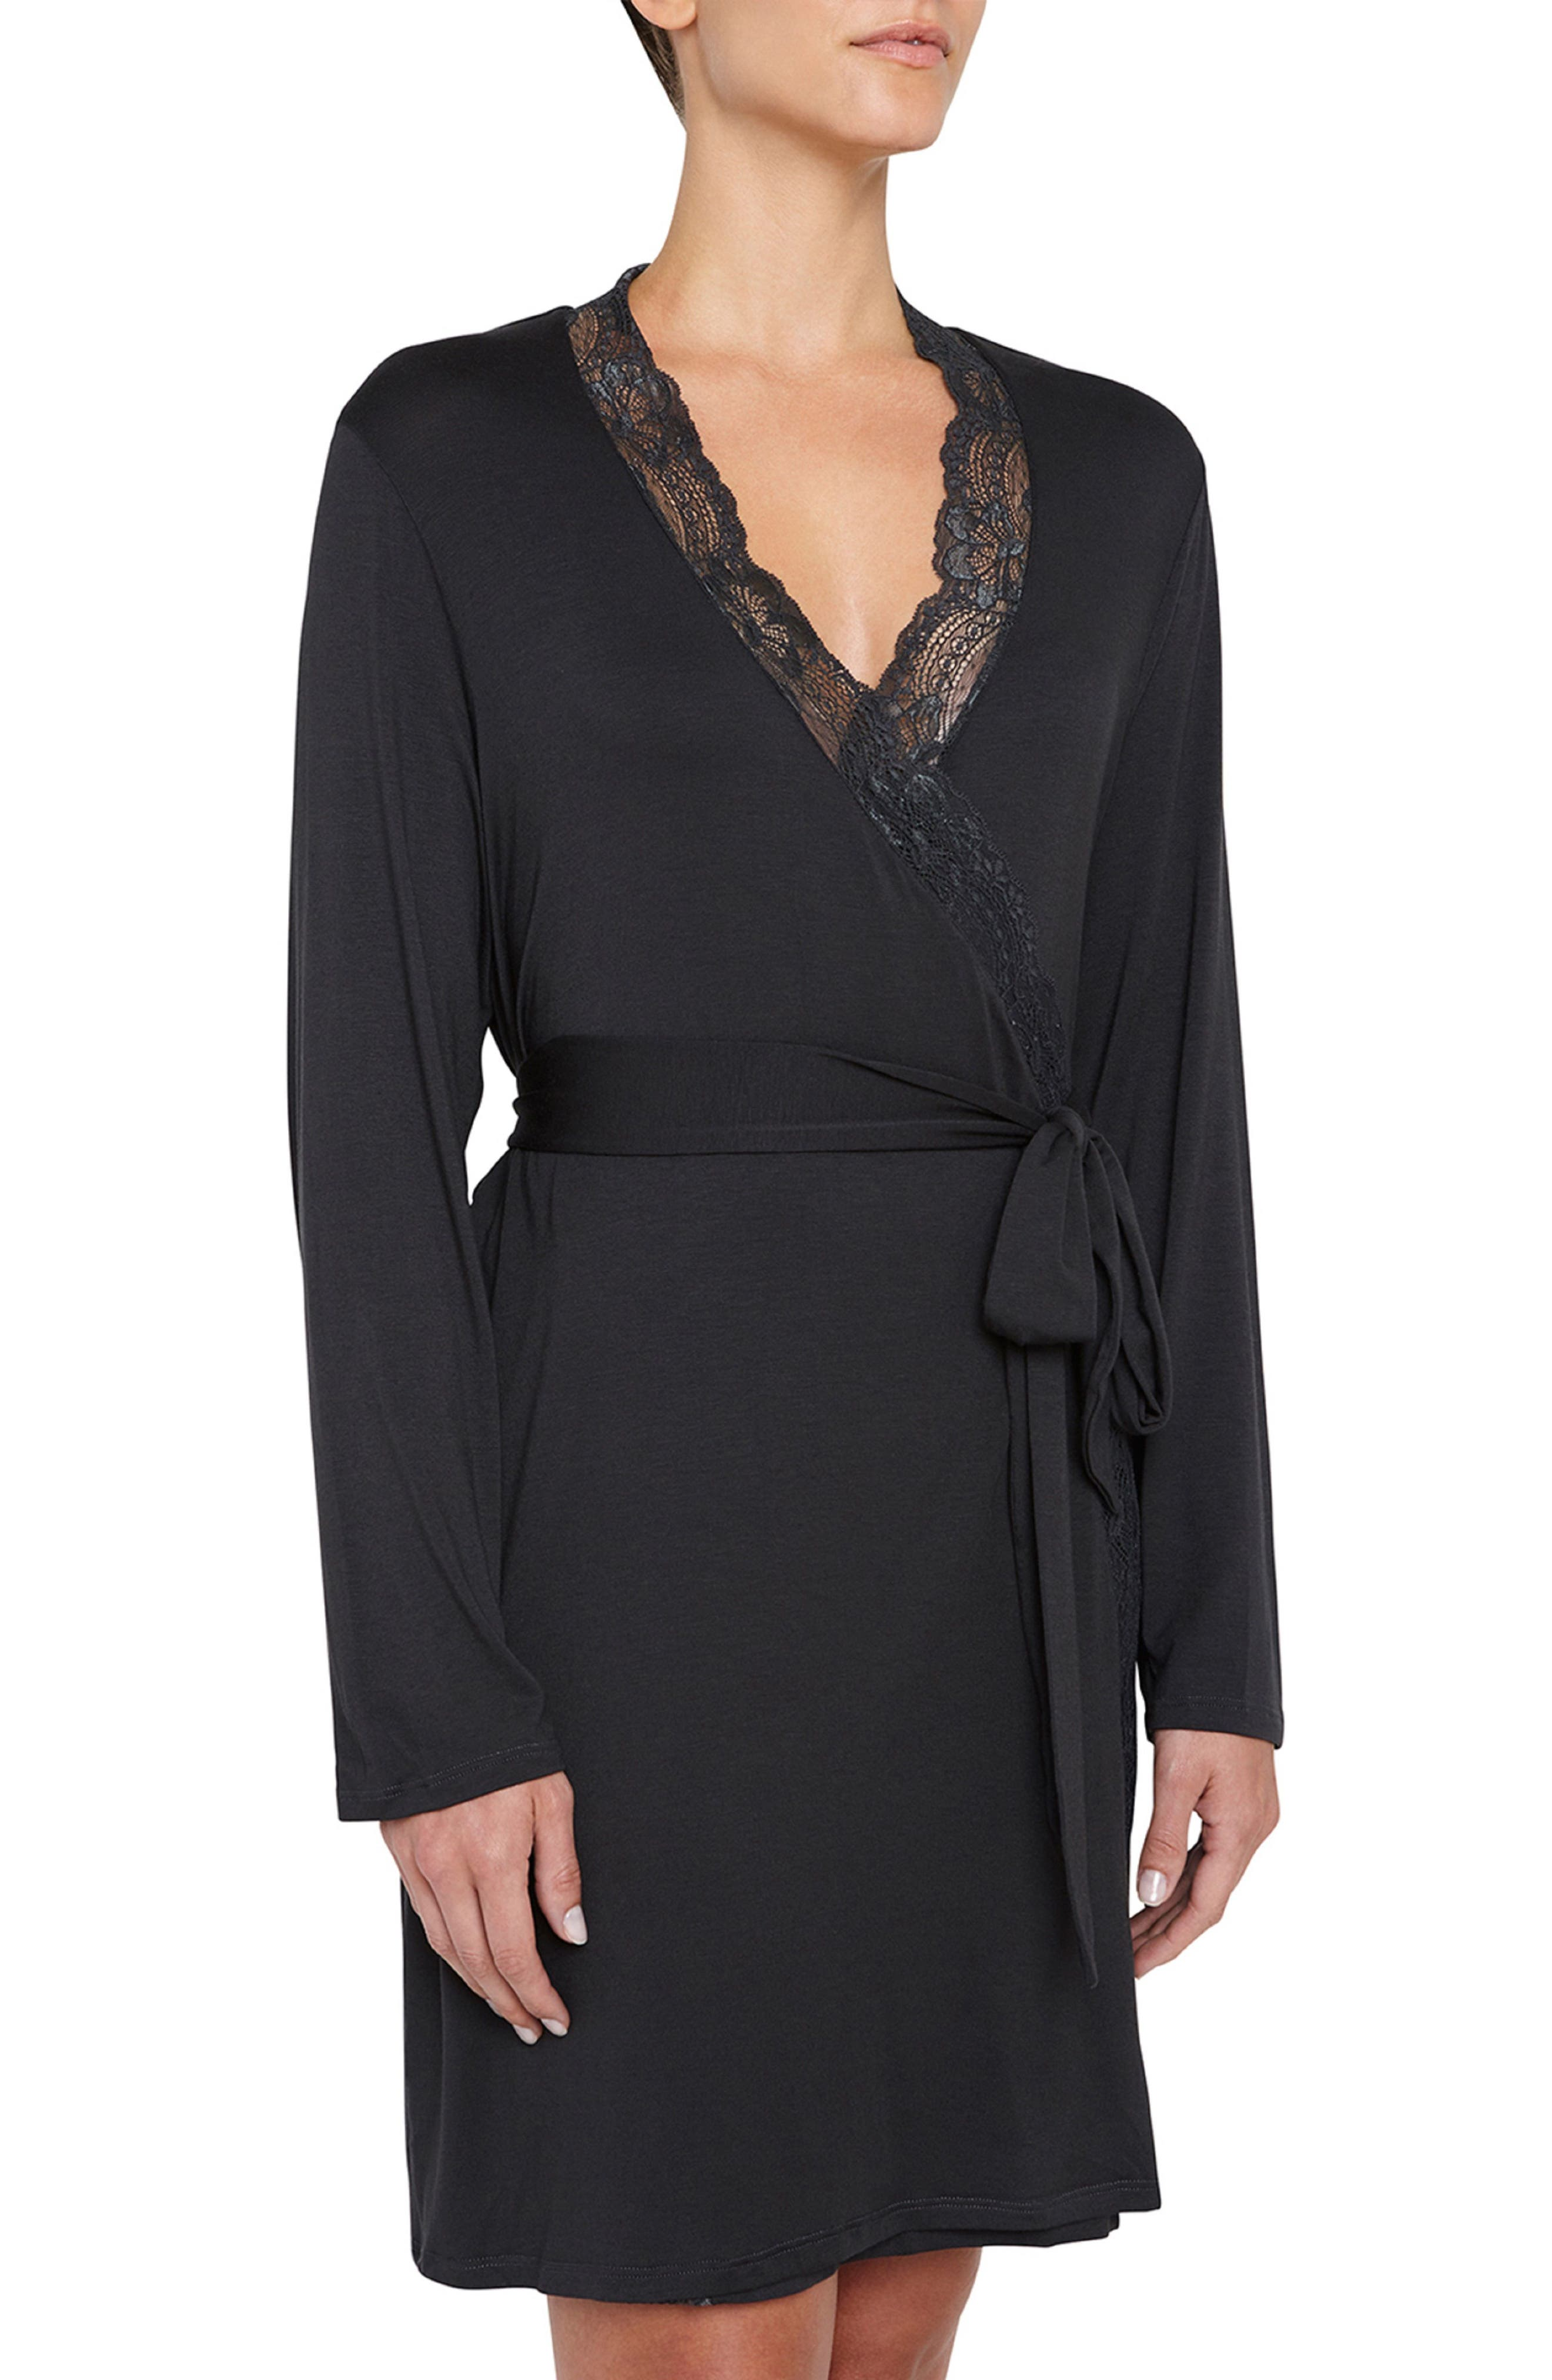 'Everly'LaceTrim JerseyRobe,                         Main,                         color,